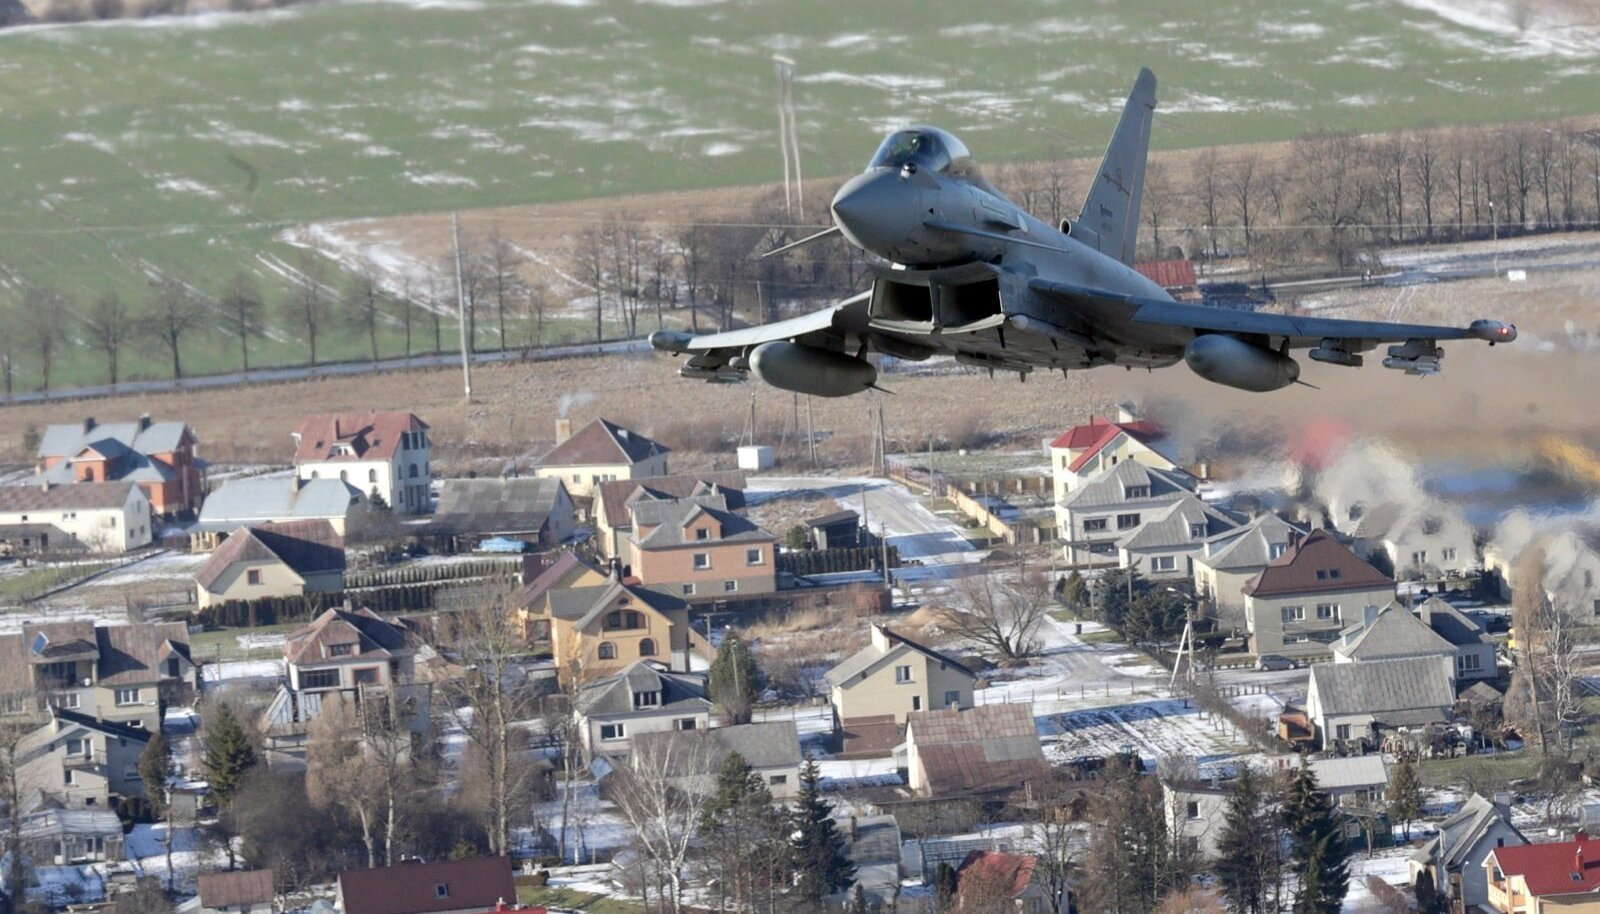 An Italian Air Force Eurofighter Typhoon fighter patrols over the Baltics during a NATO air policing mission from Zokniai air base near Siauliai